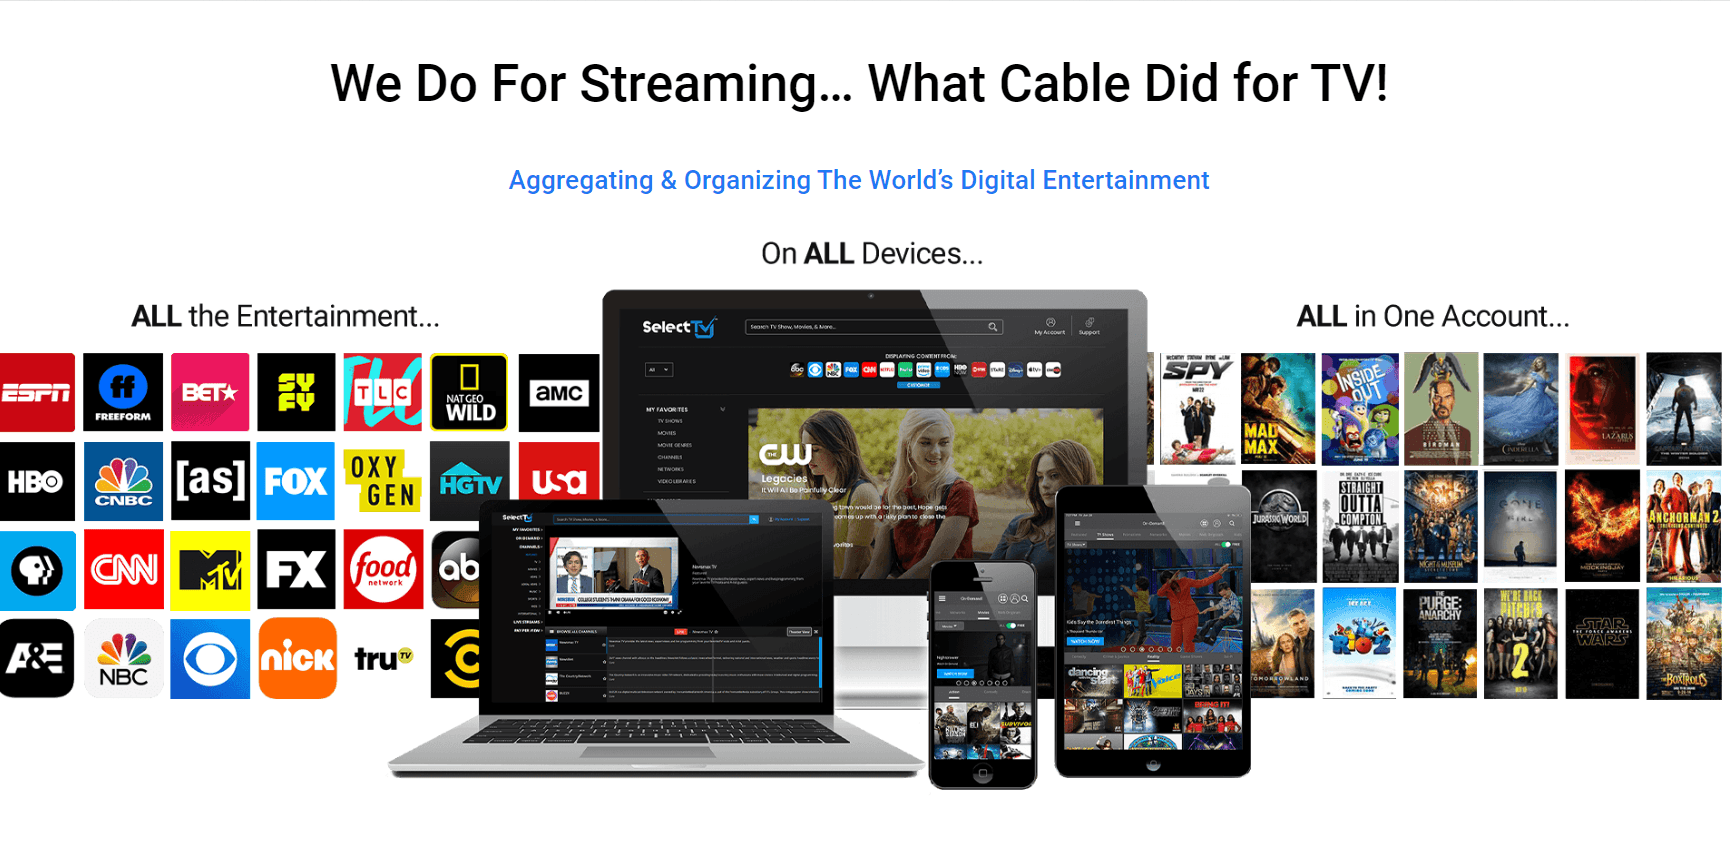 FreeCast Taps Dish and Google Executives Amidst IPO Announcement